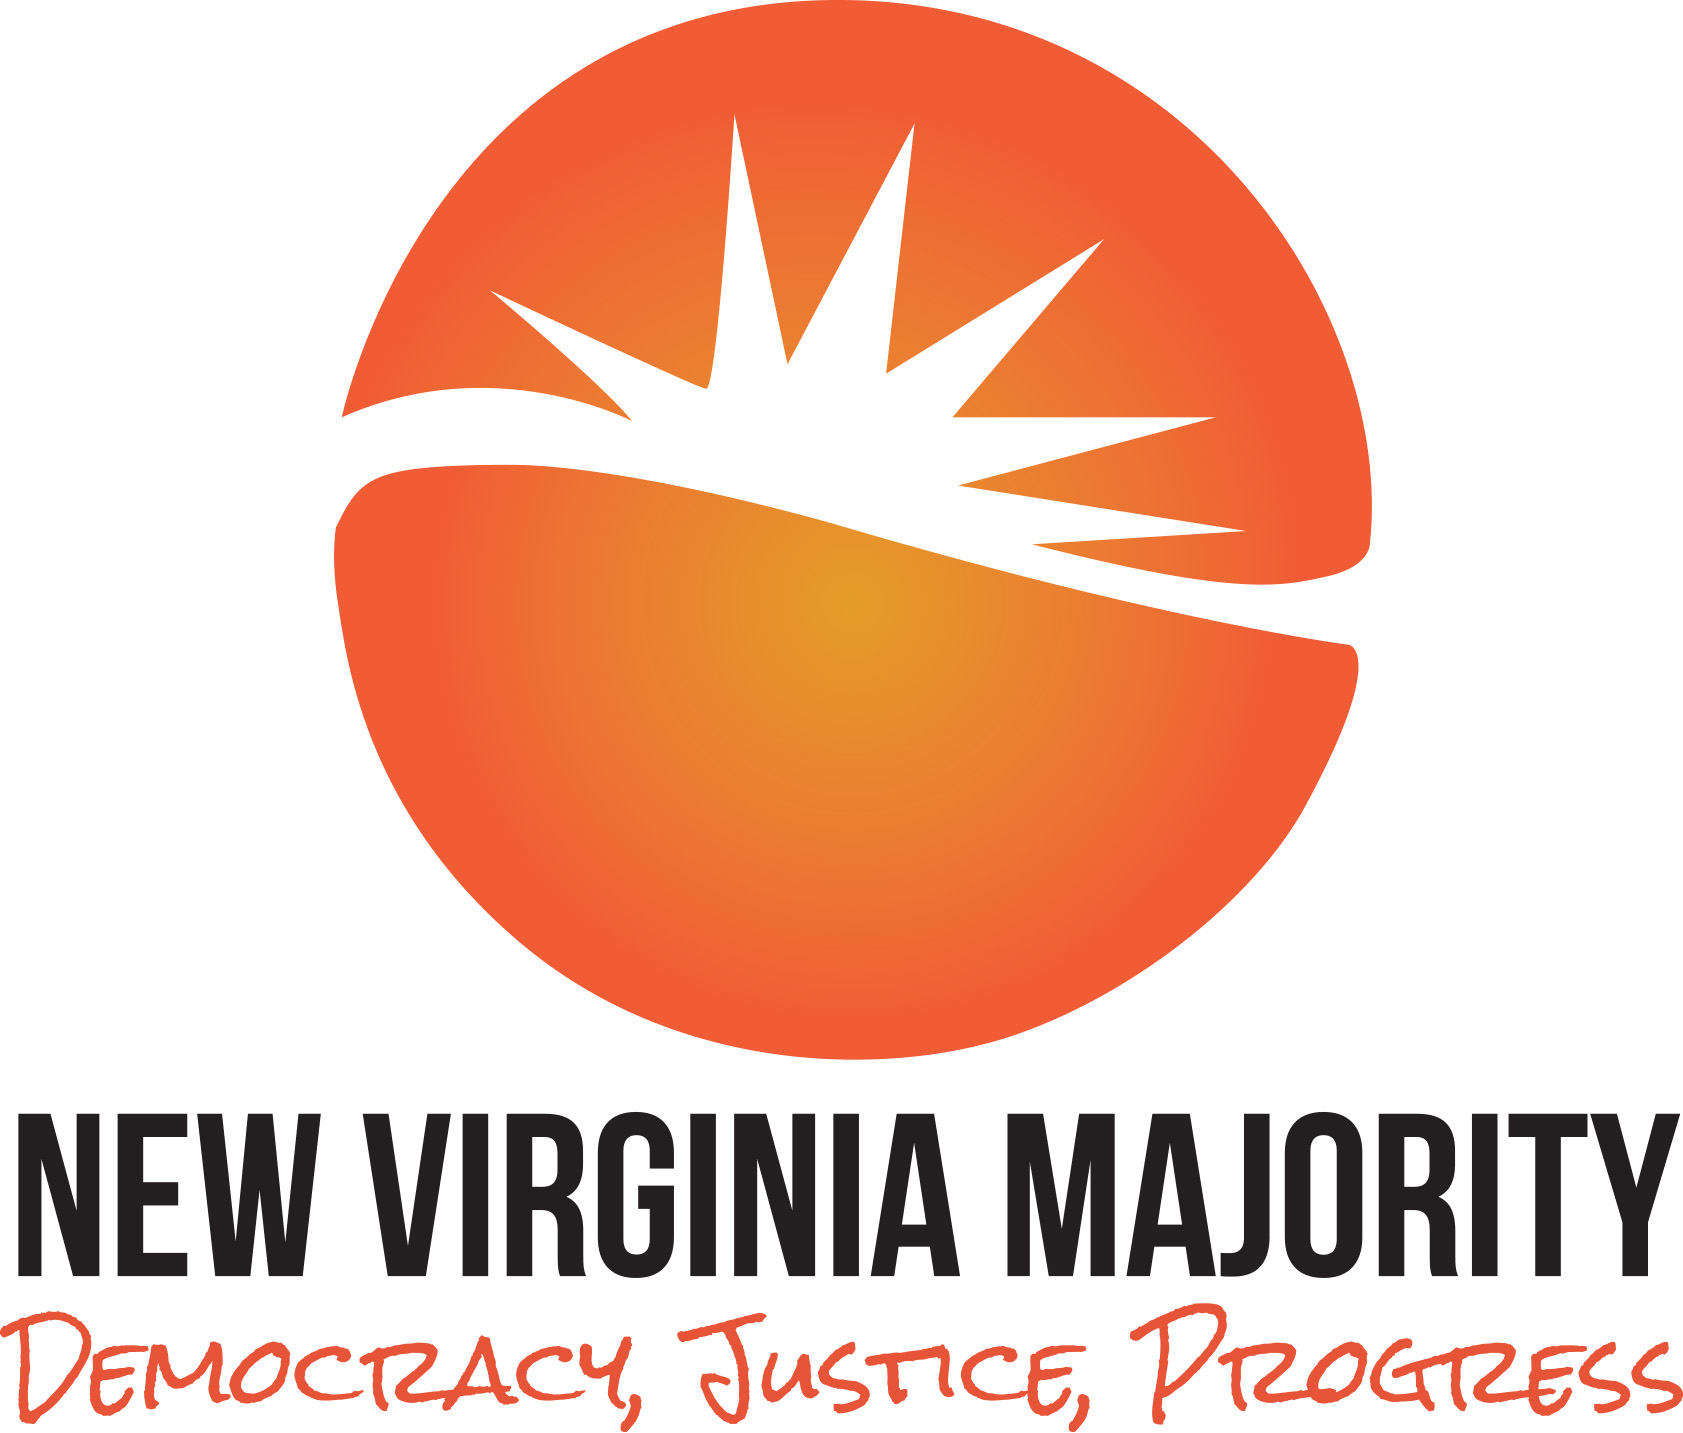 New Virginia Majority